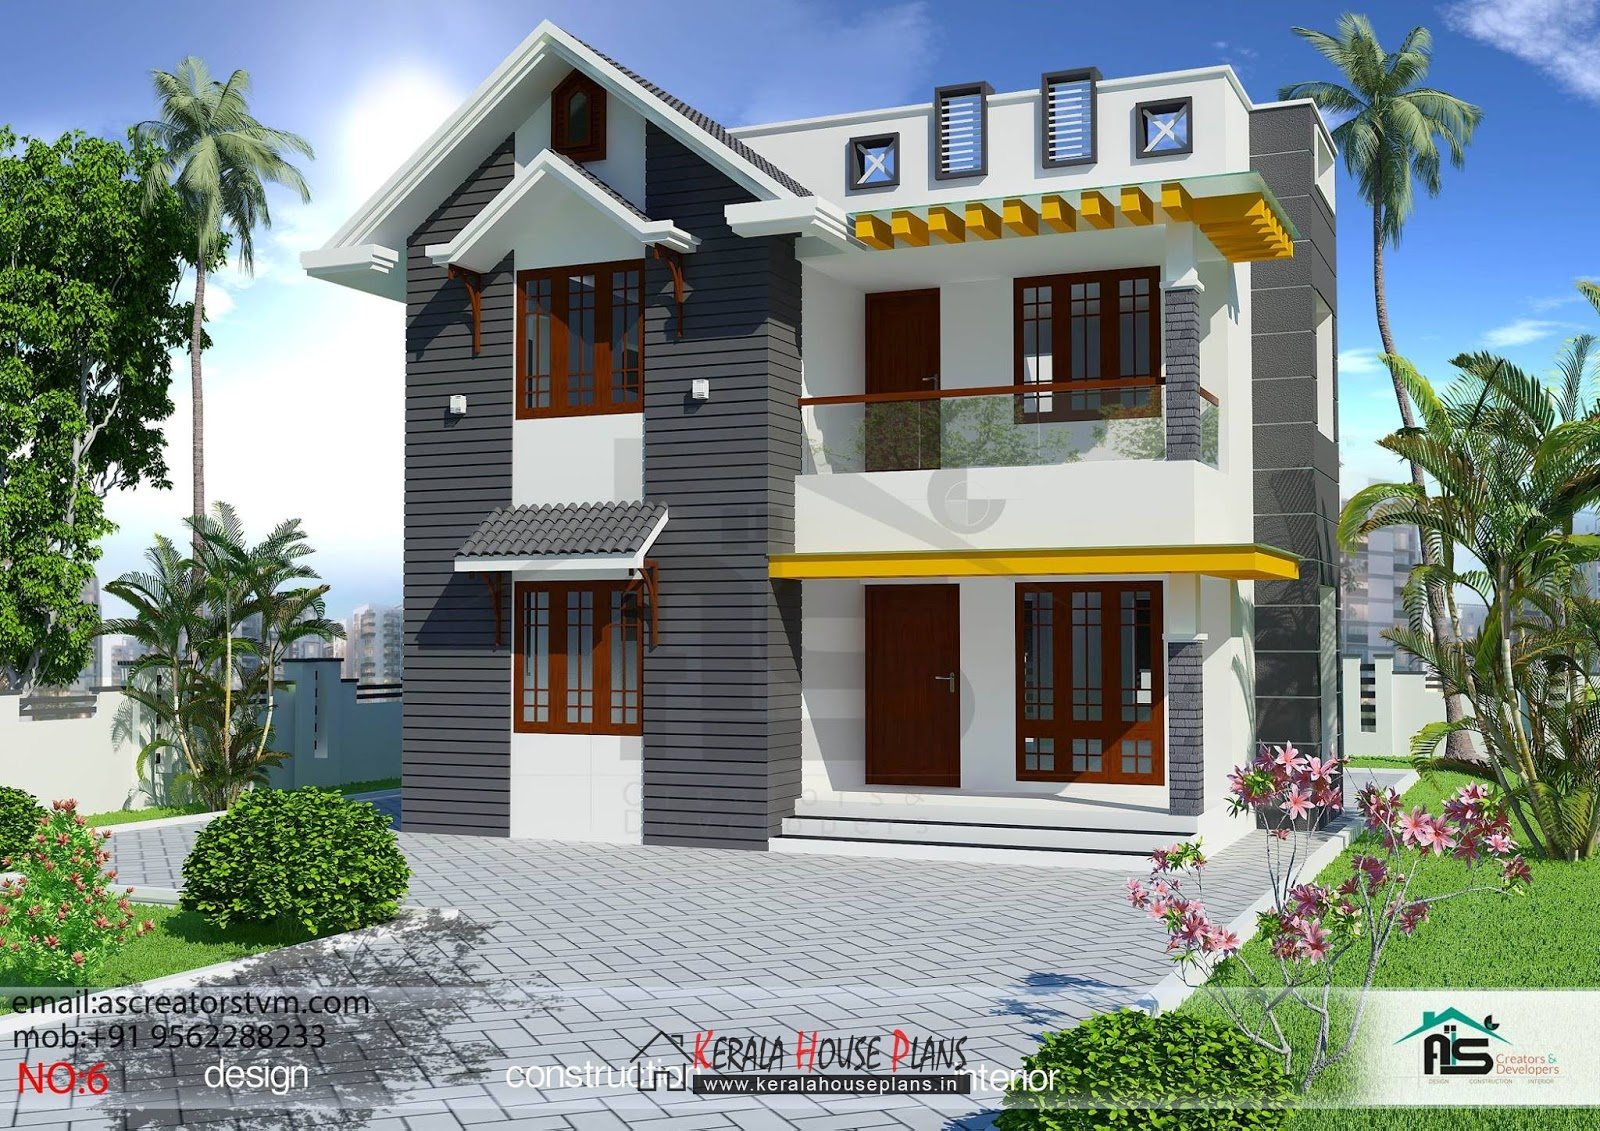 3 bedroom house plans in kerala double floor kerala for 2 bedroom house plans in kerala